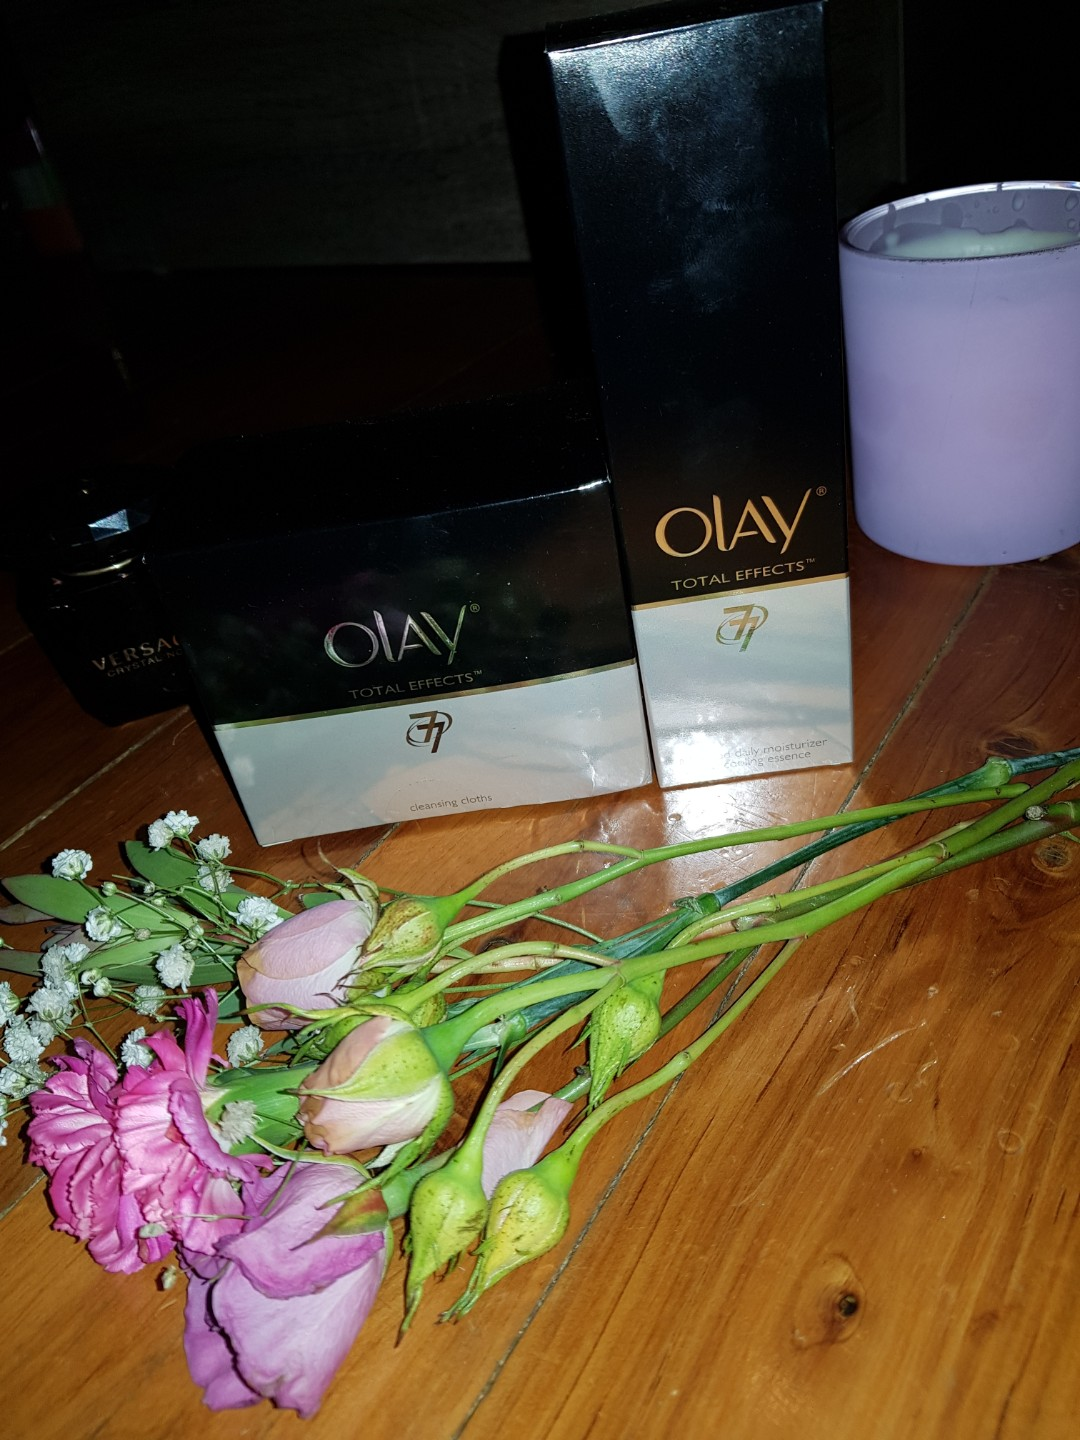 Olay Cleansing Pads and Olay Moisturizer 50ml